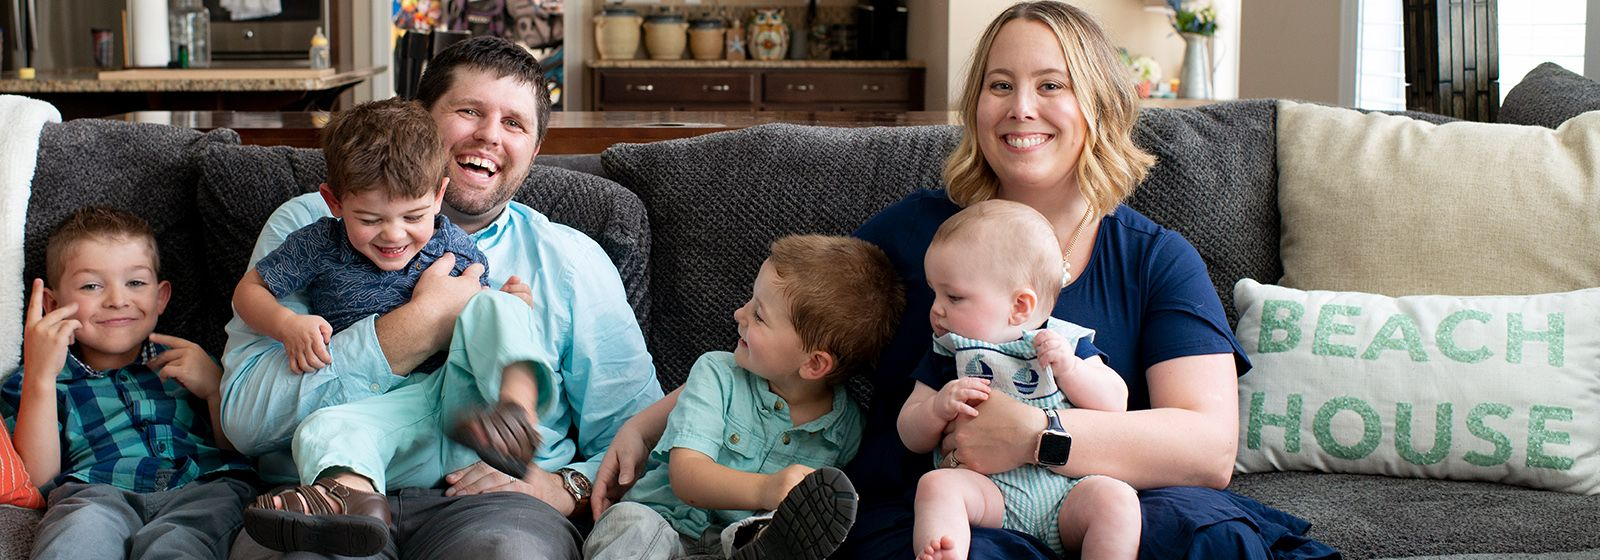 For this family, three of a kind helps lead to a full house